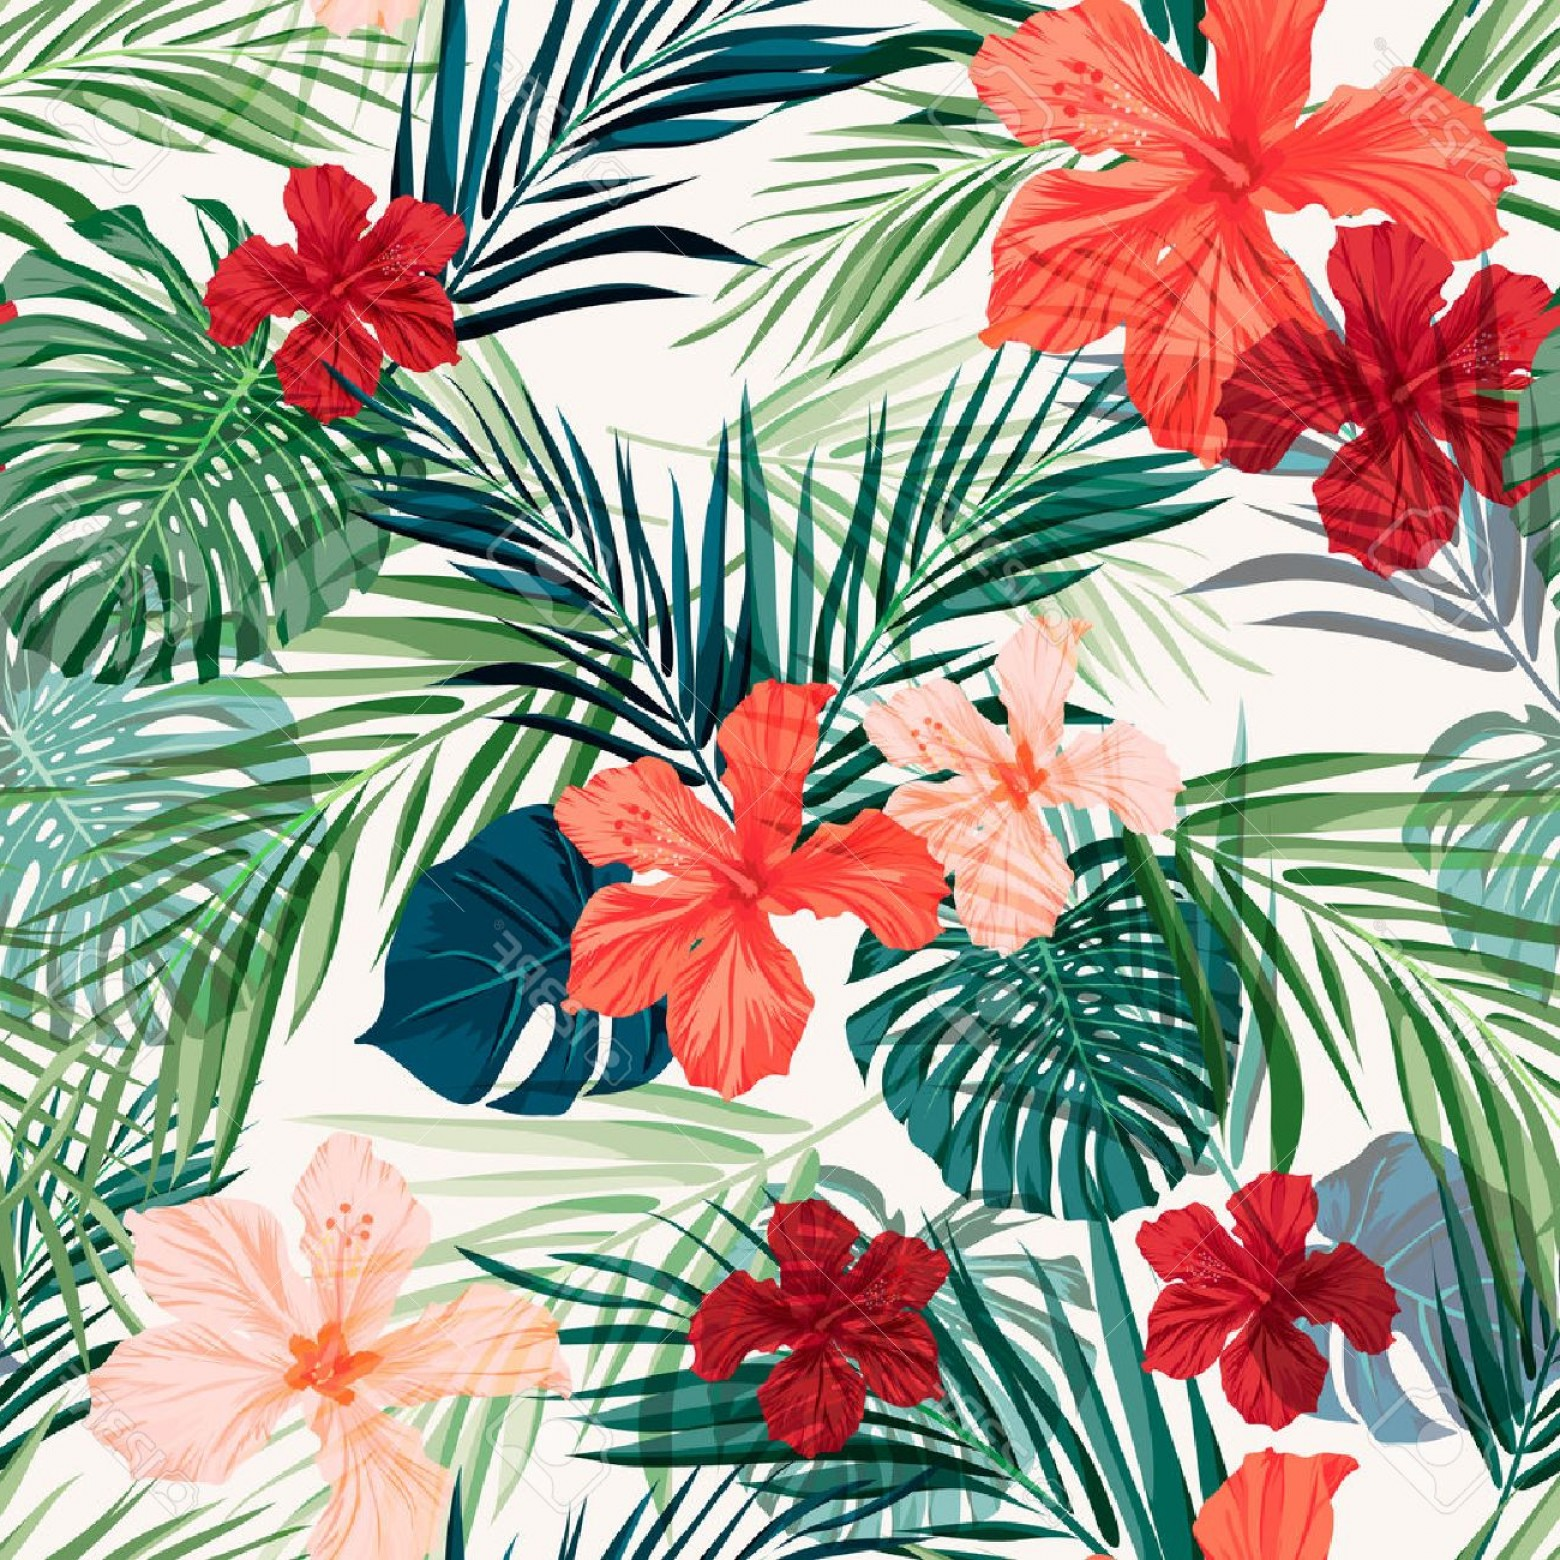 Hawaiian Flower Seamless Vector Pattern: Exclusive Photostock Vector Summer Colorful Hawaiian Seamless Pattern With Tropical Plants And Hibiscus Flowers Vector Illustrat